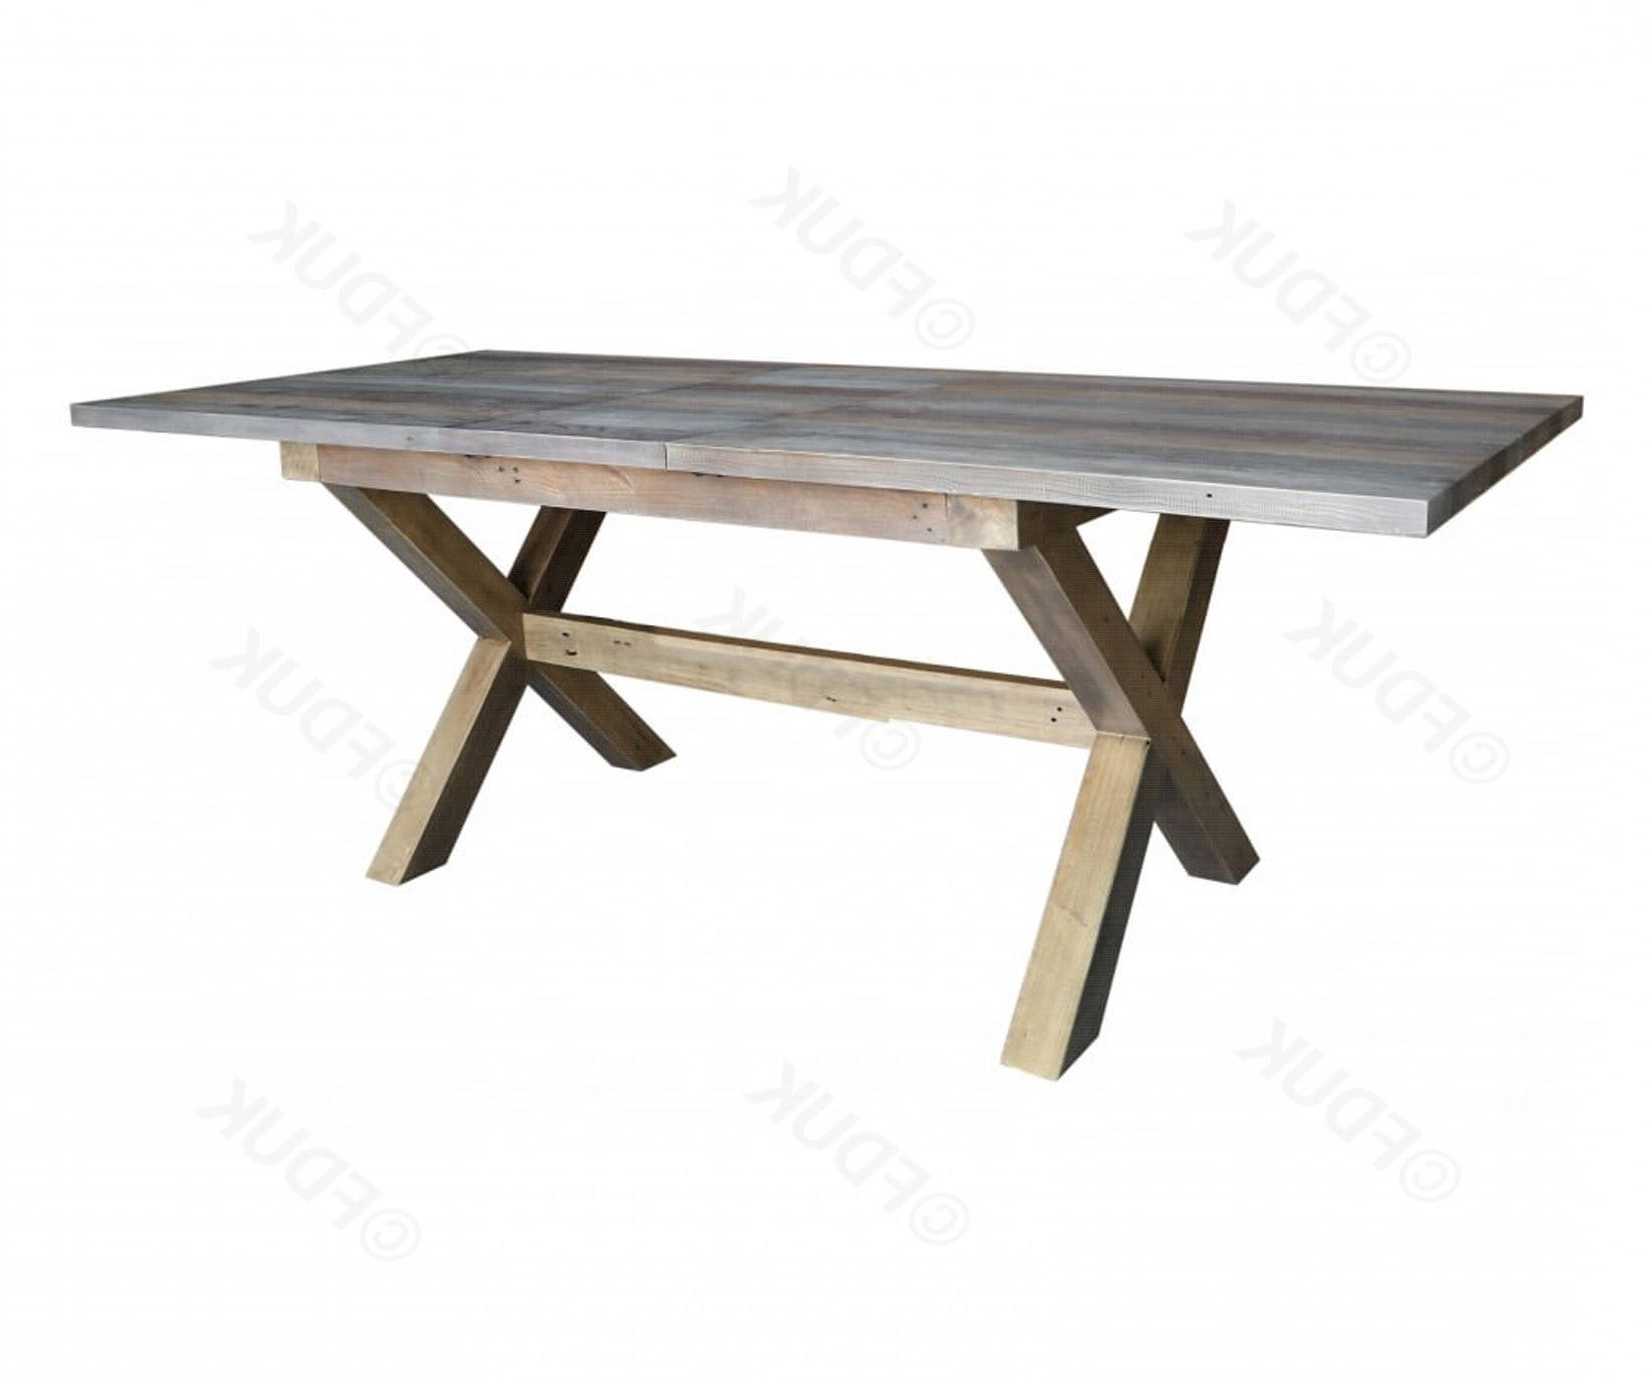 Enchanting Rustic Reclaimed Wood Extending Dining Table Throughout Well Known Hart Reclaimed Extending Dining Tables (View 5 of 25)